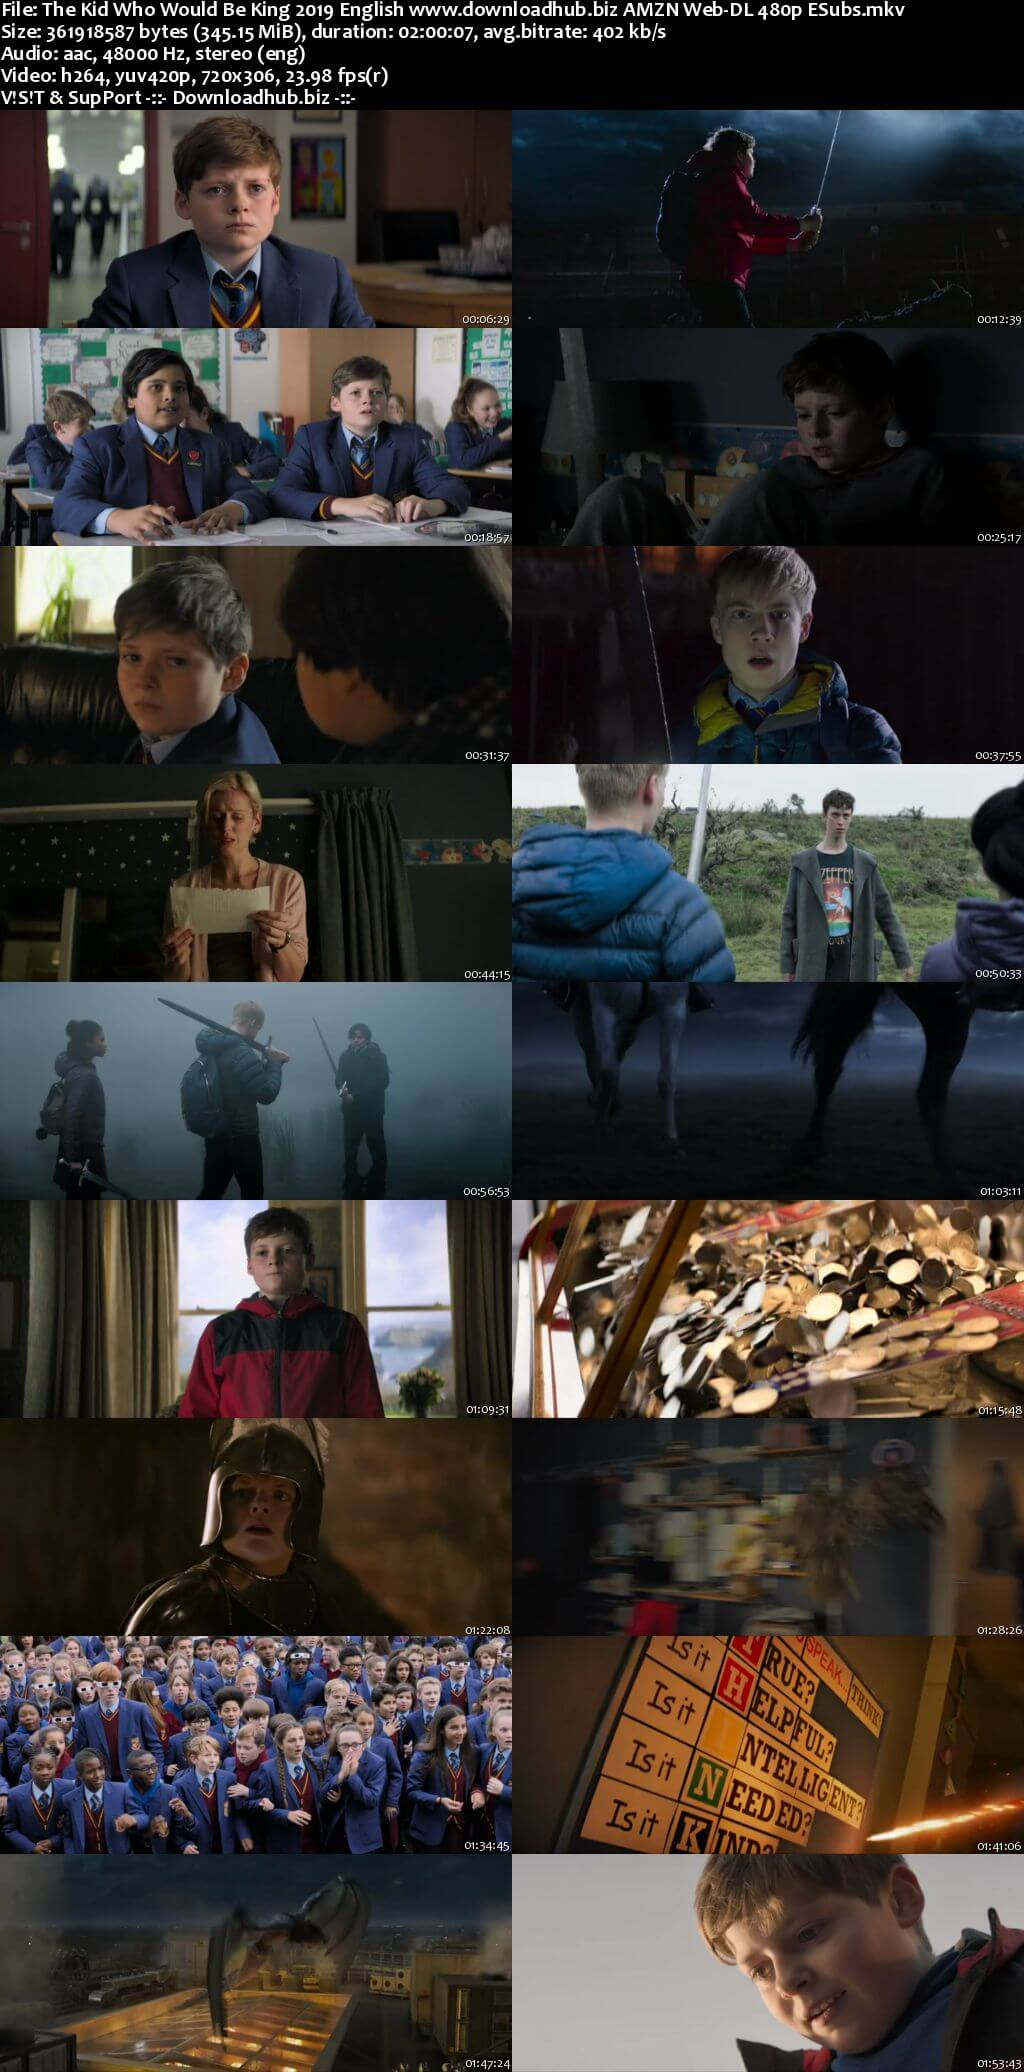 The Kid Who Would Be King 2019 English 350MB AMZN Web-DL 480p ESubs